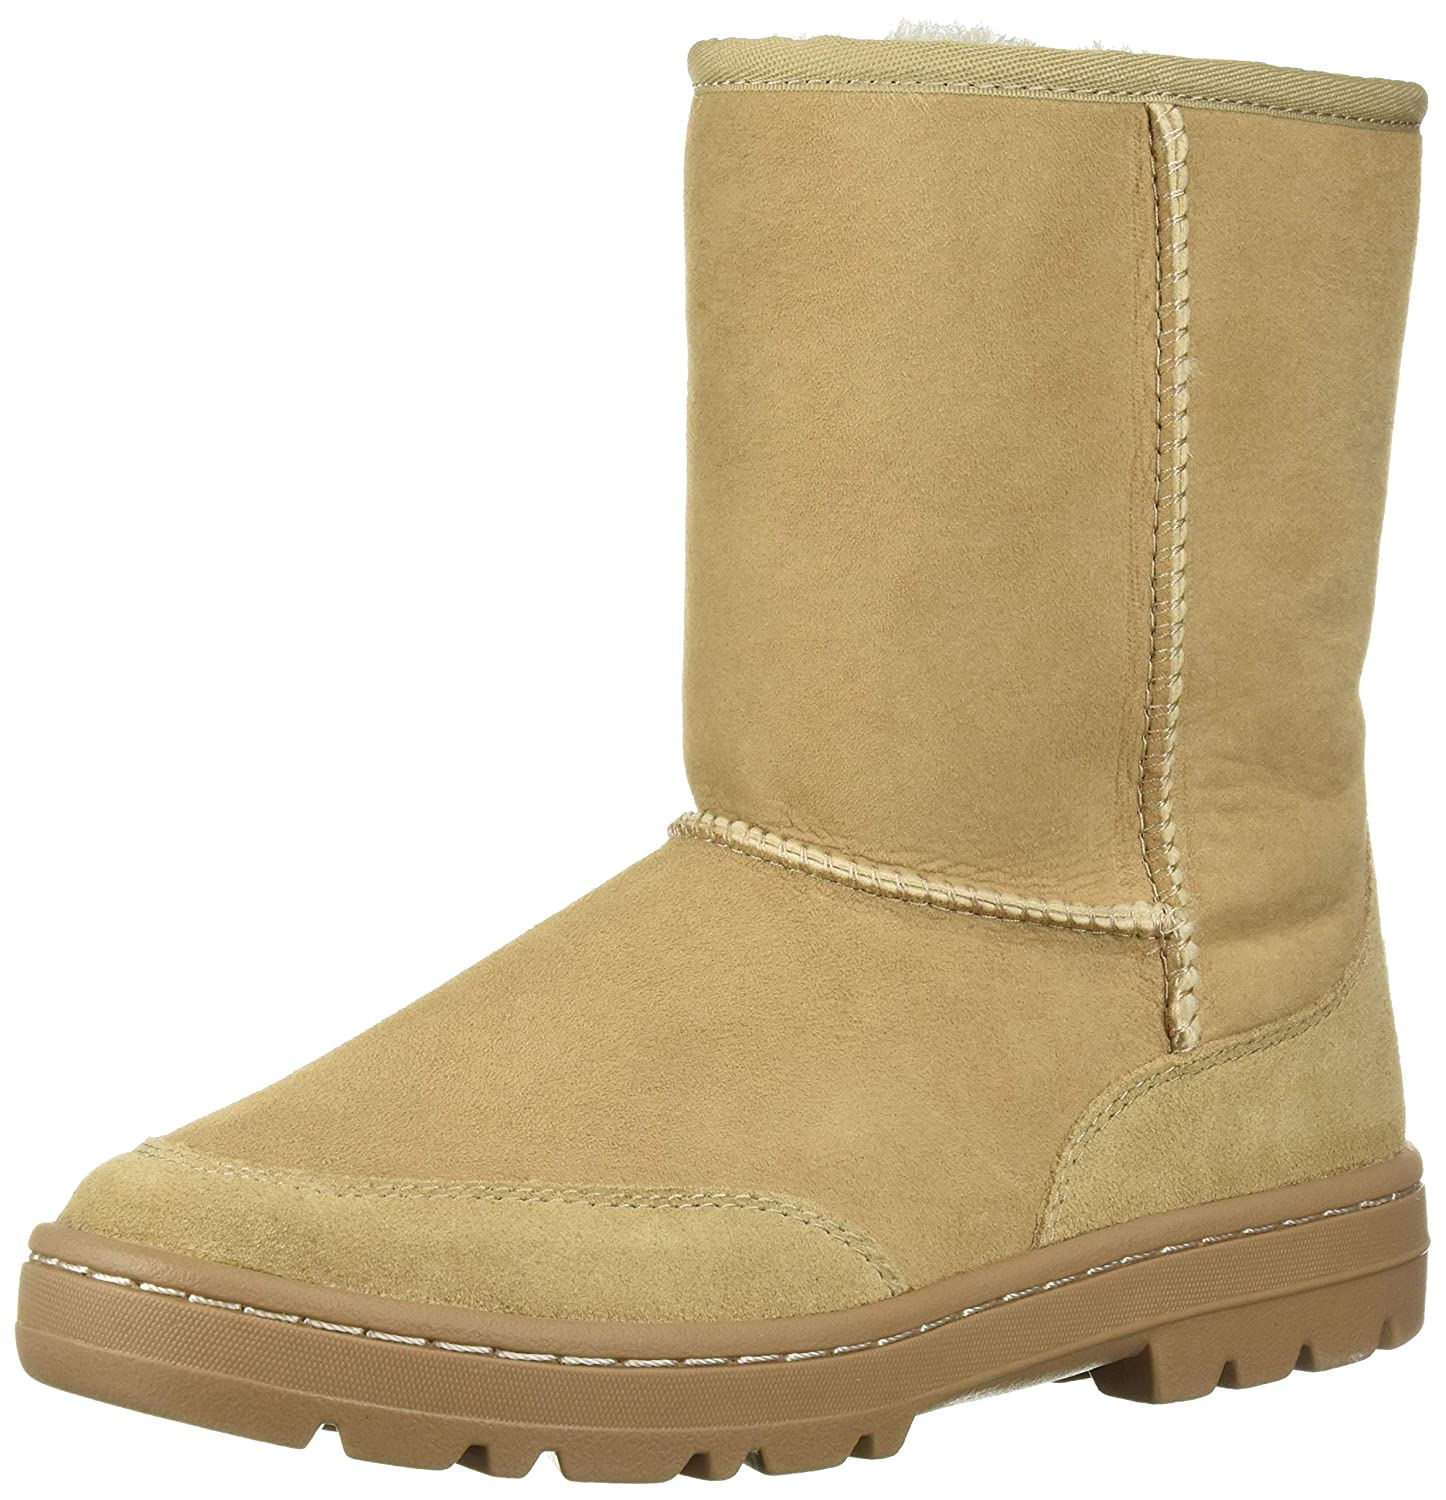 meet 131f0 46c44 UGG Women's W Ultra Short Revival Fashion Boot